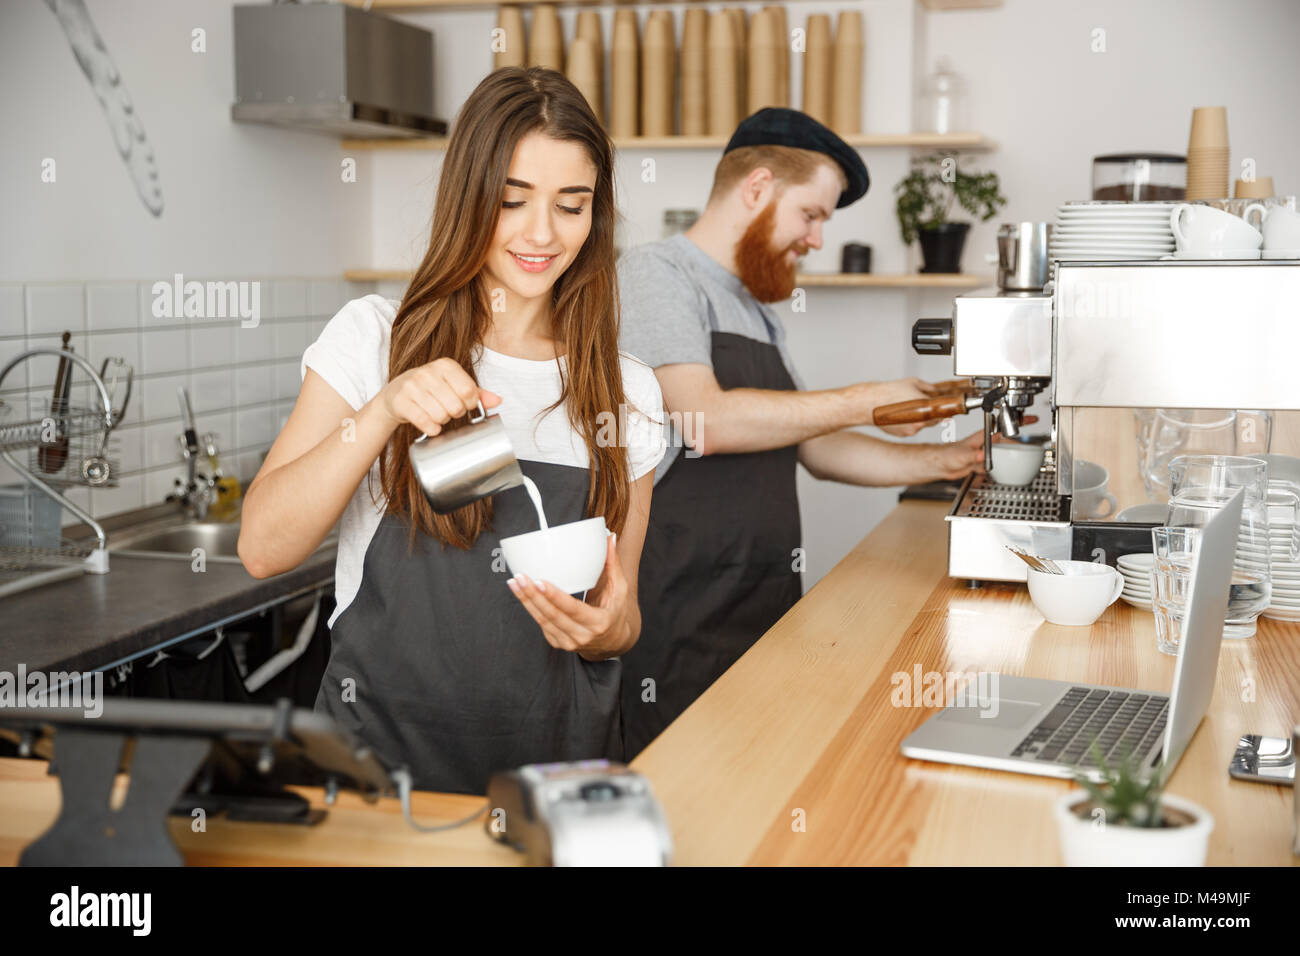 Coffee Business Concept - close-up lady barista in apron preparing and pouring milk into hot cup while standing - Stock Image